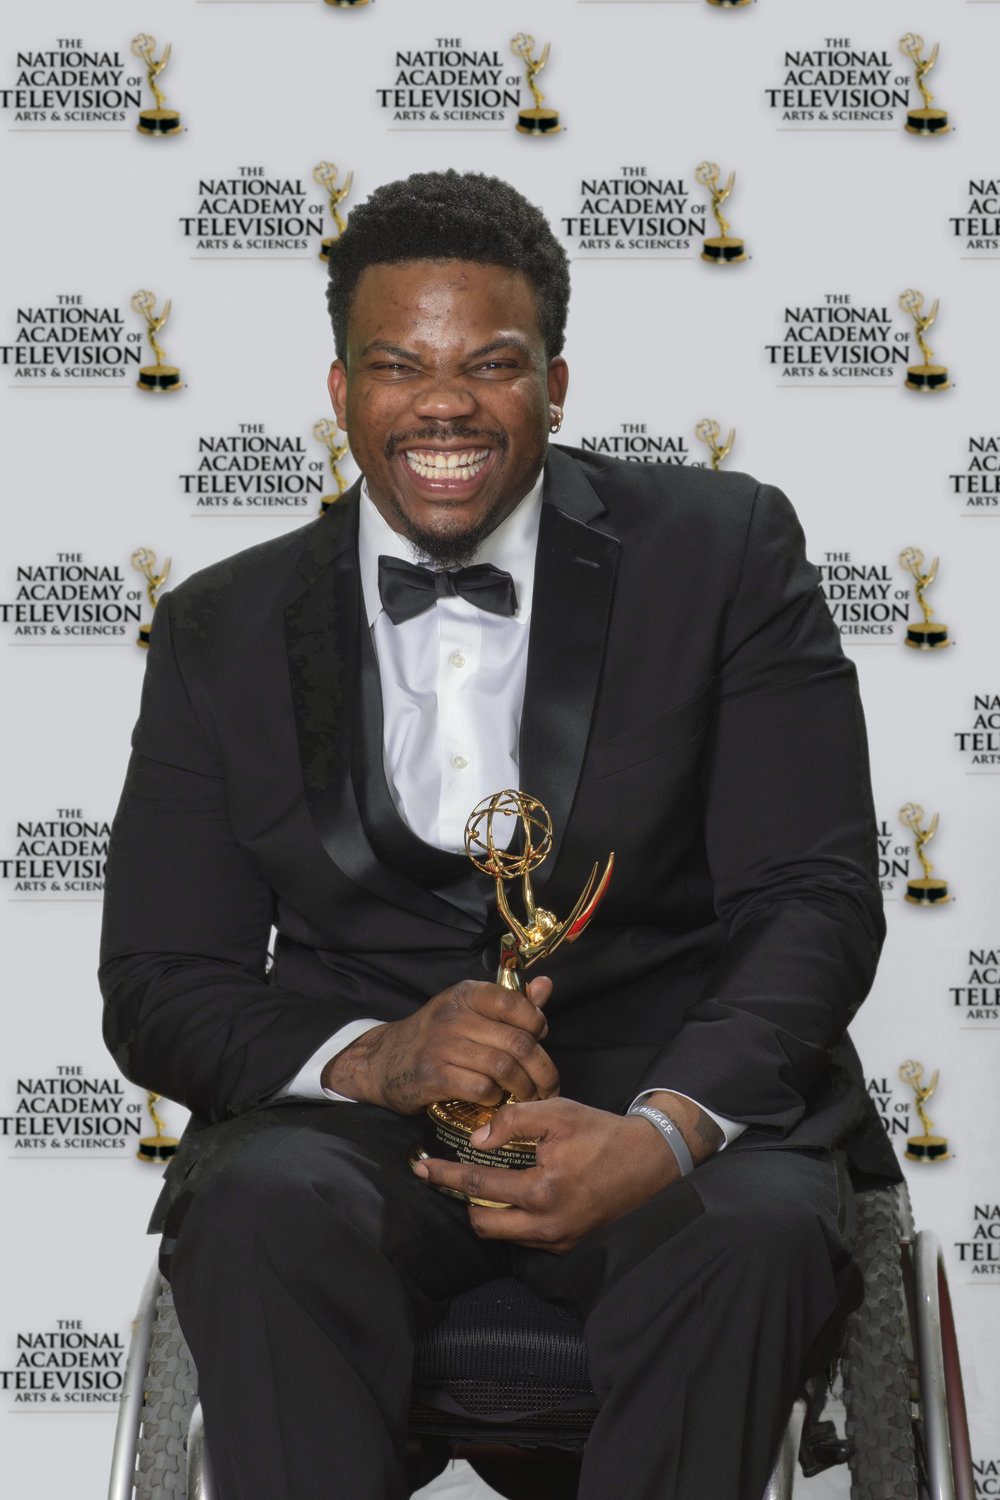 Timothy-alexander-emmy-award-winner